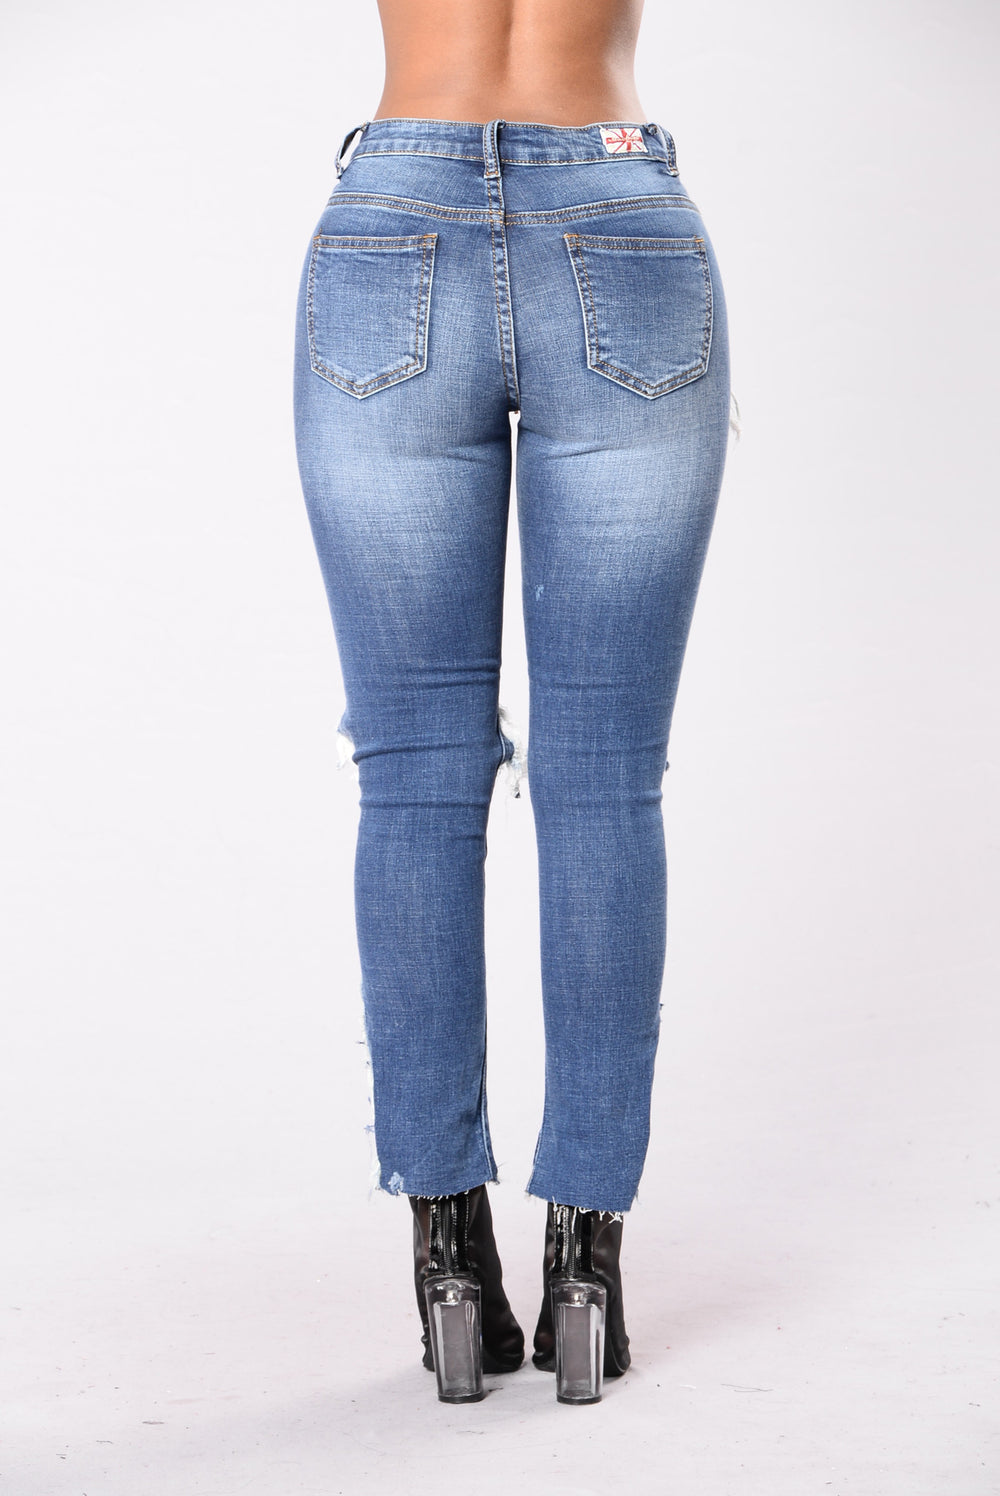 Get My Attention Jeans - Medium